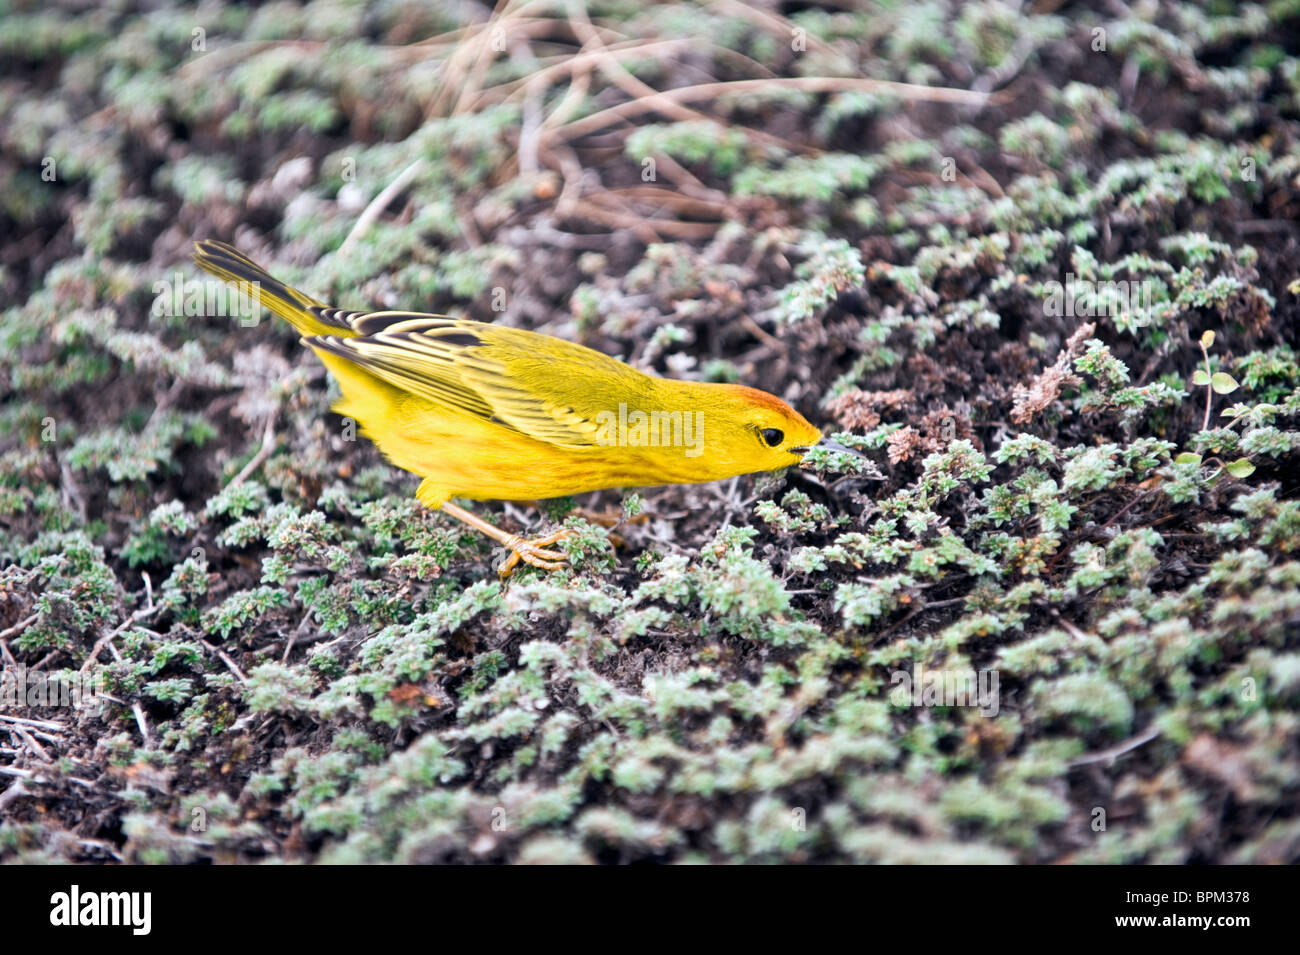 South America, Ecuador, Galapagos Islands, Yellow Warbler, male, feeding in shore vegetation, Genovese Island - Stock Image